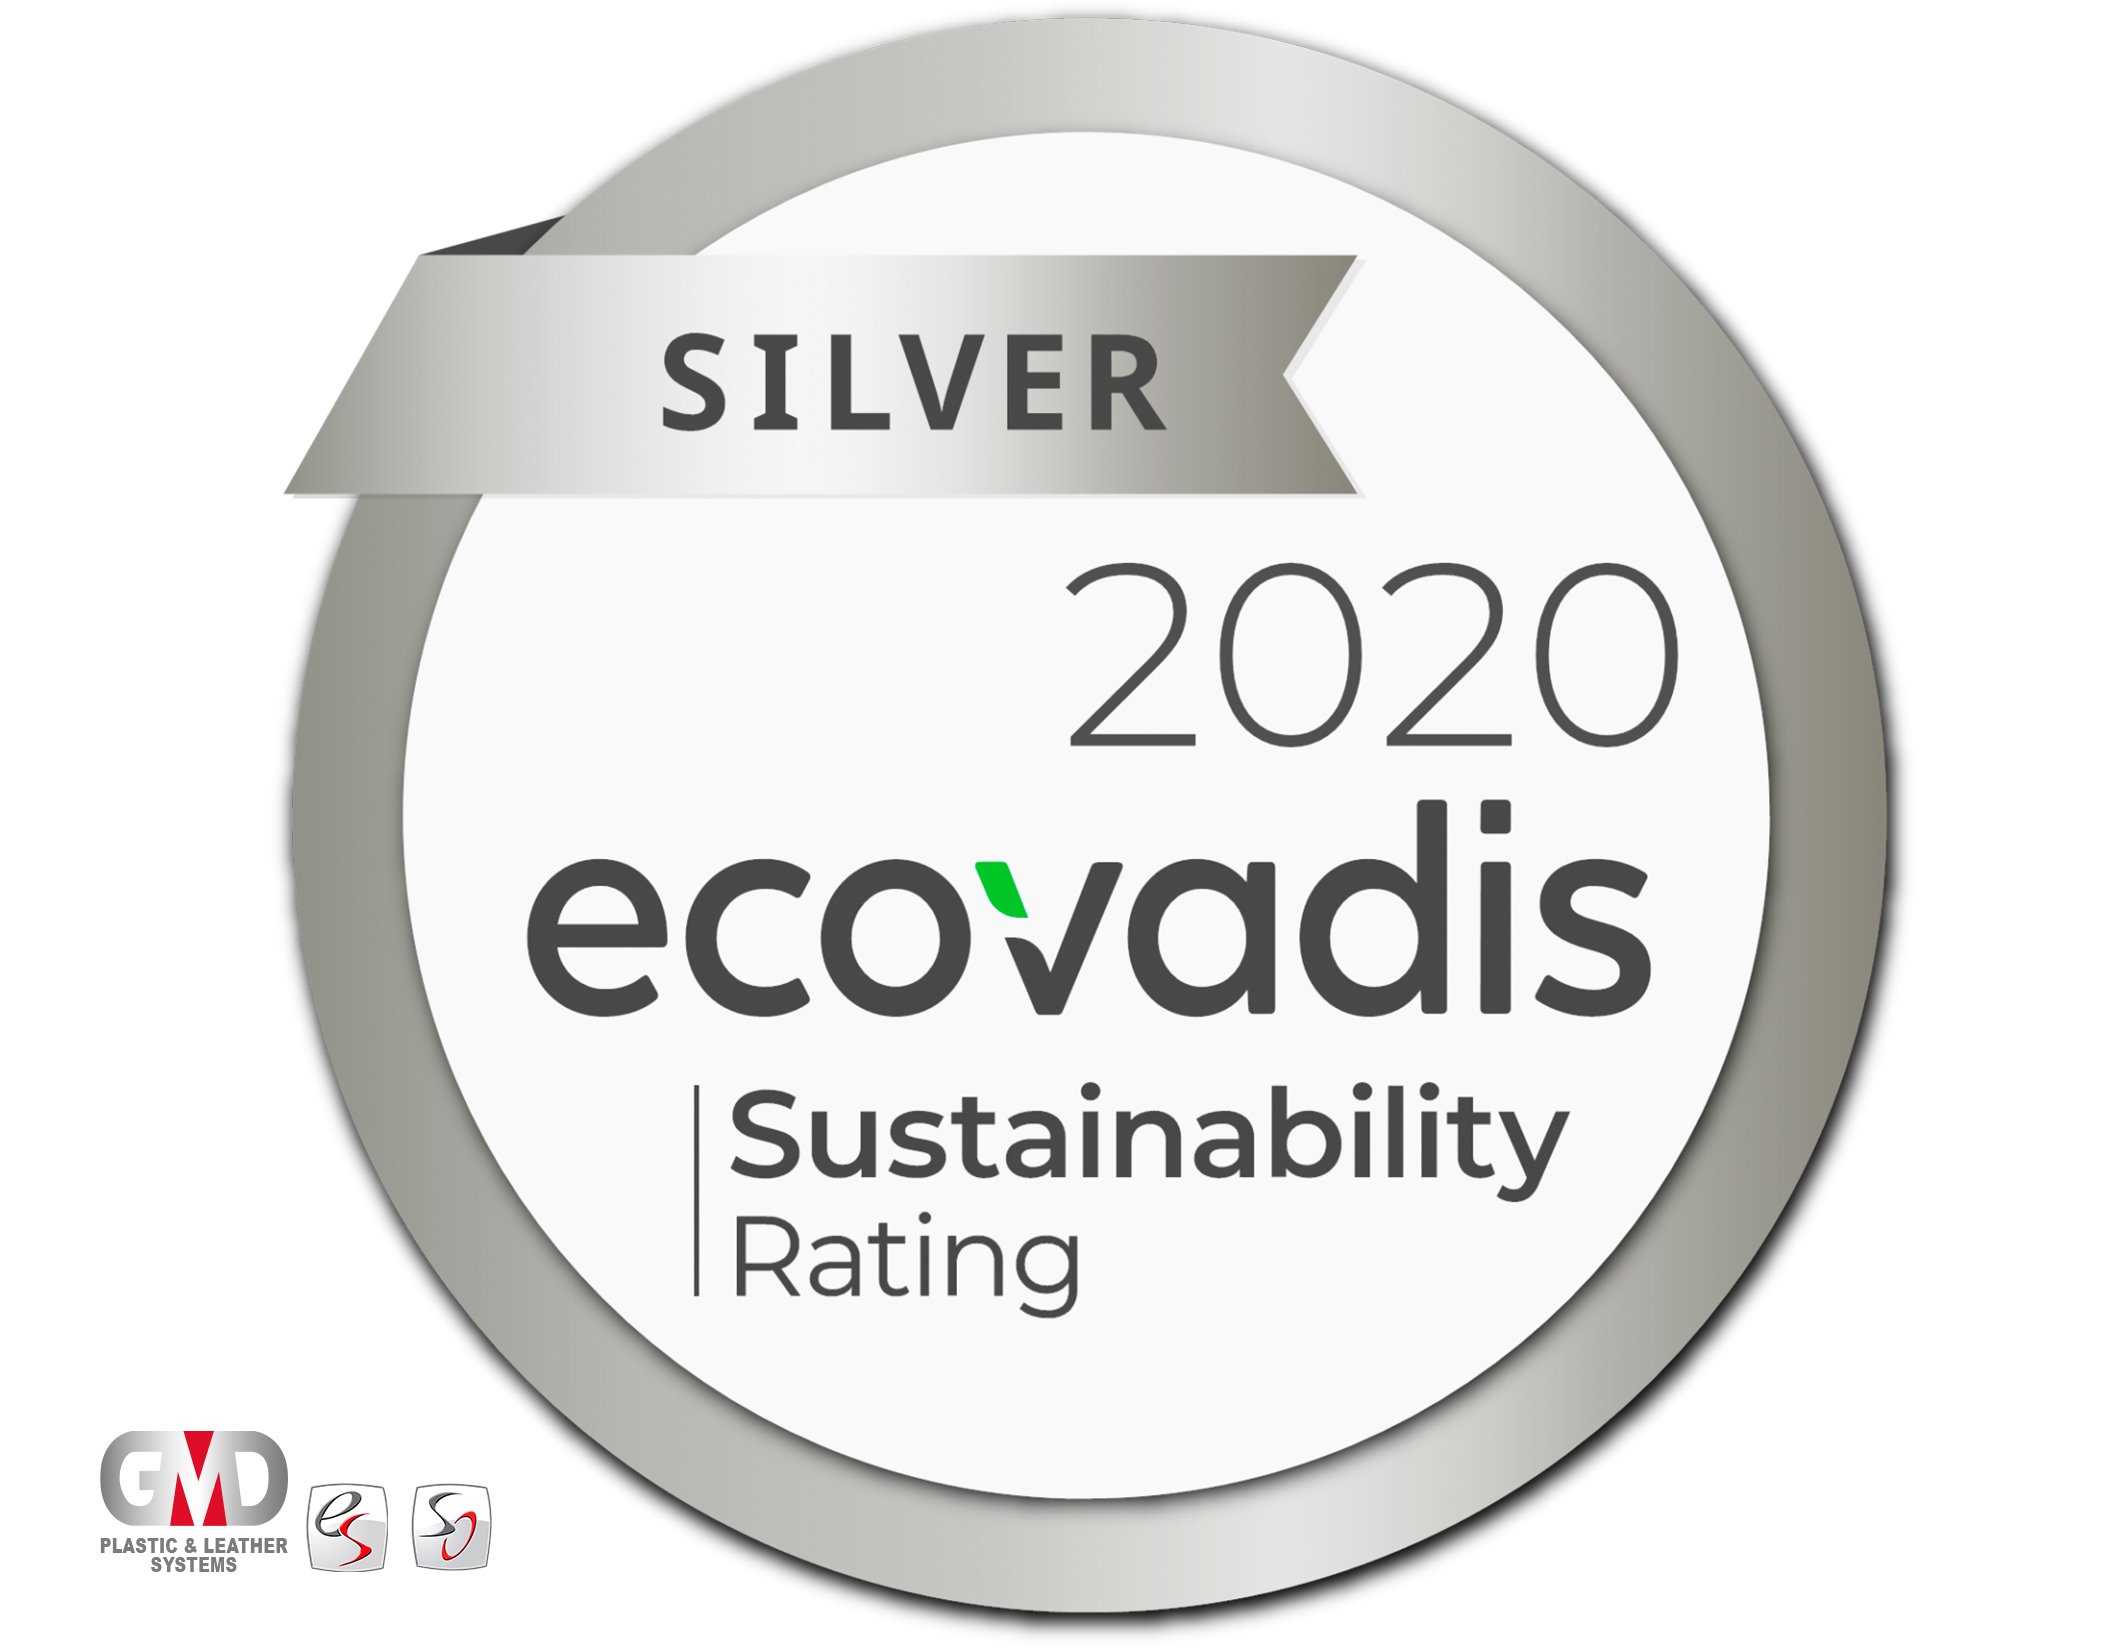 GMD Plastic & Leather Systems receives the Ecovadis Silver Award